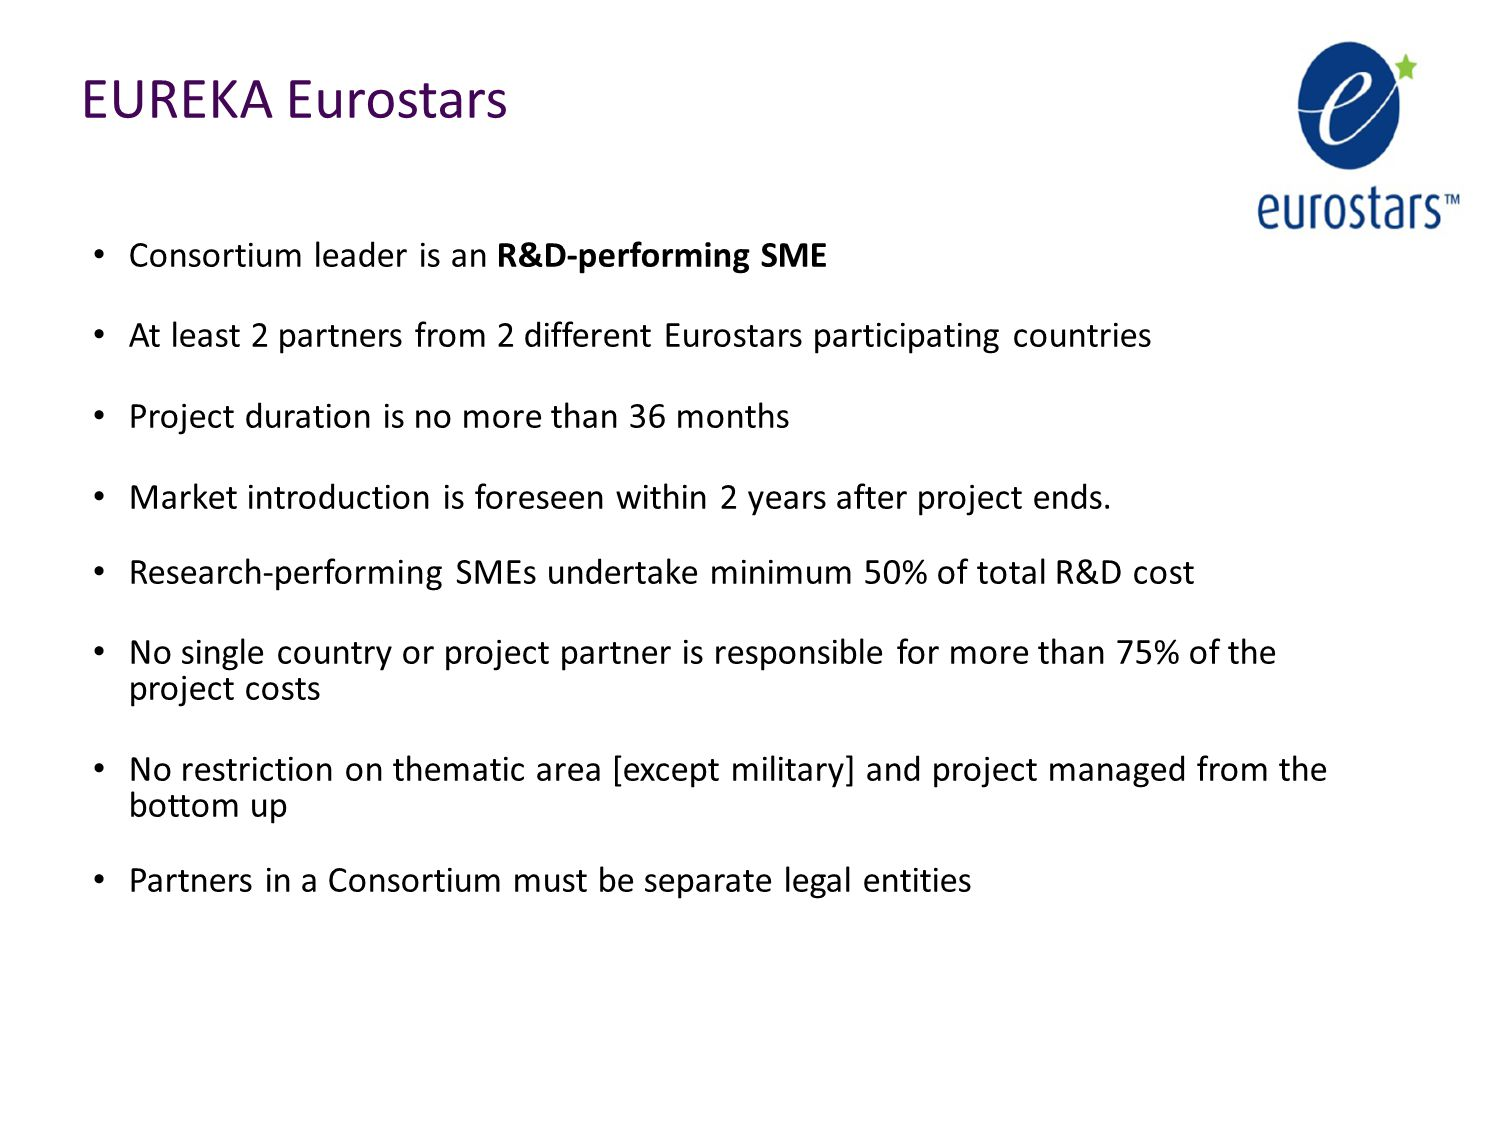 EUREKA Eurostars Consortium leader is an R&D-performing SME At least 2 partners from 2 different Eurostars participating countries Project duration is